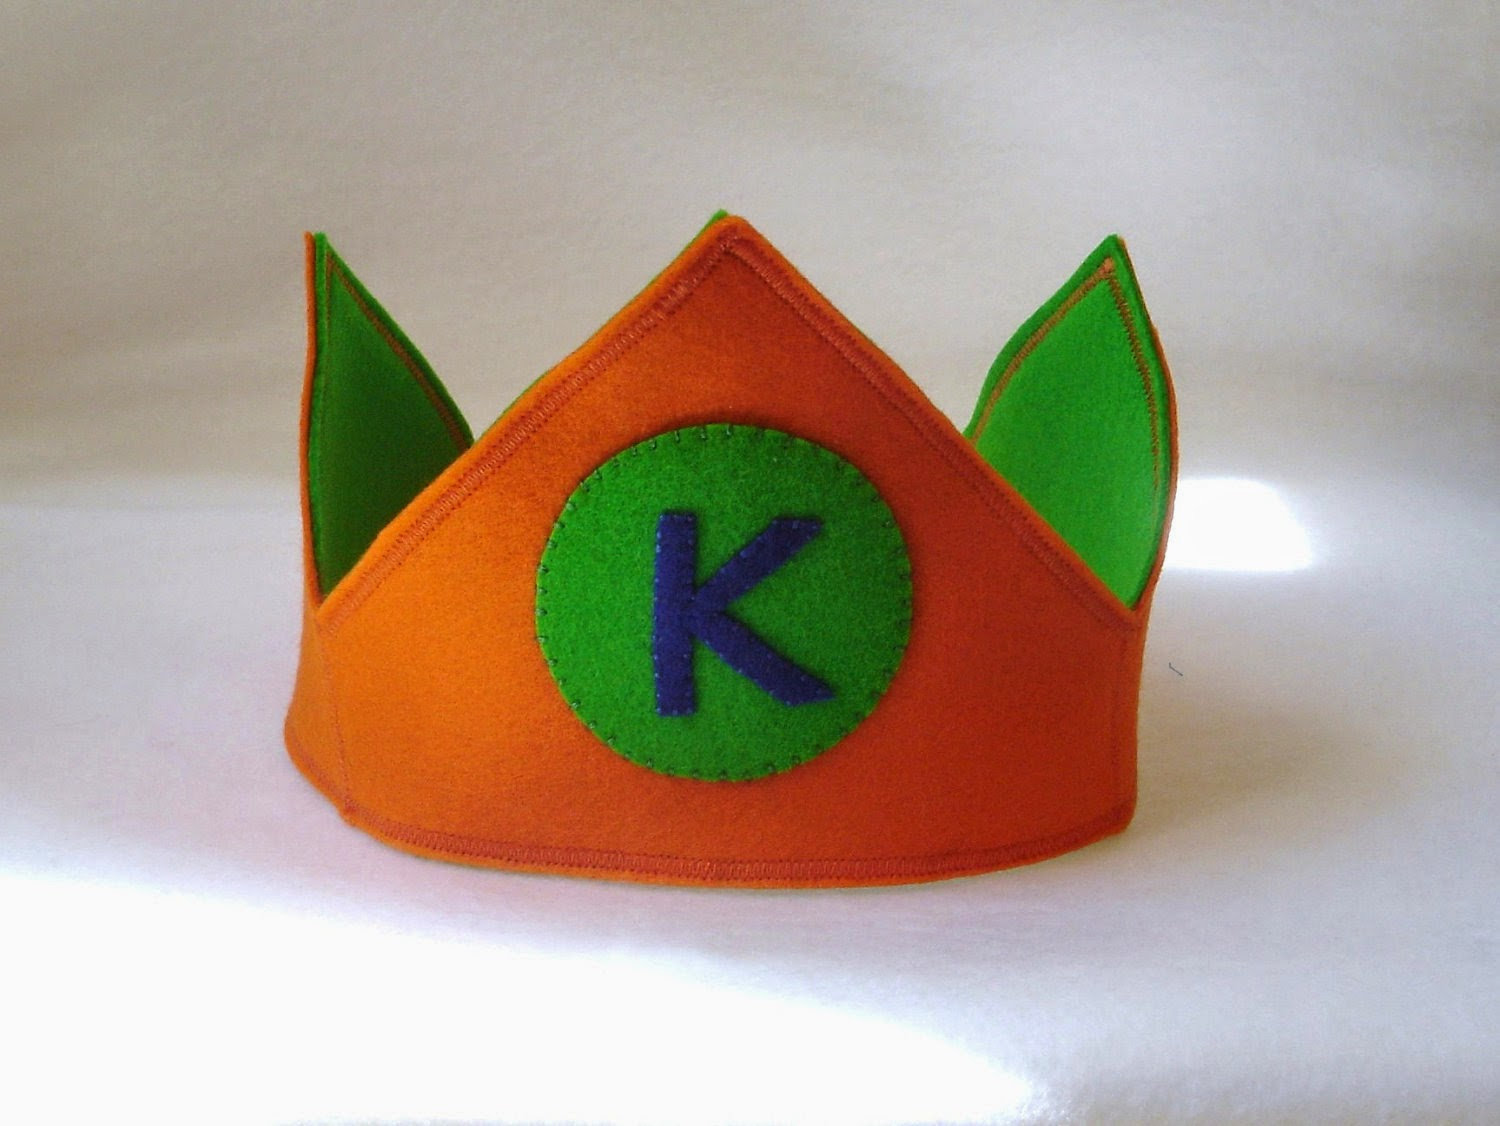 https://www.etsy.com/listing/108779111/custom-wool-felt-letter-birthday-crown?ref=shop_home_active_4